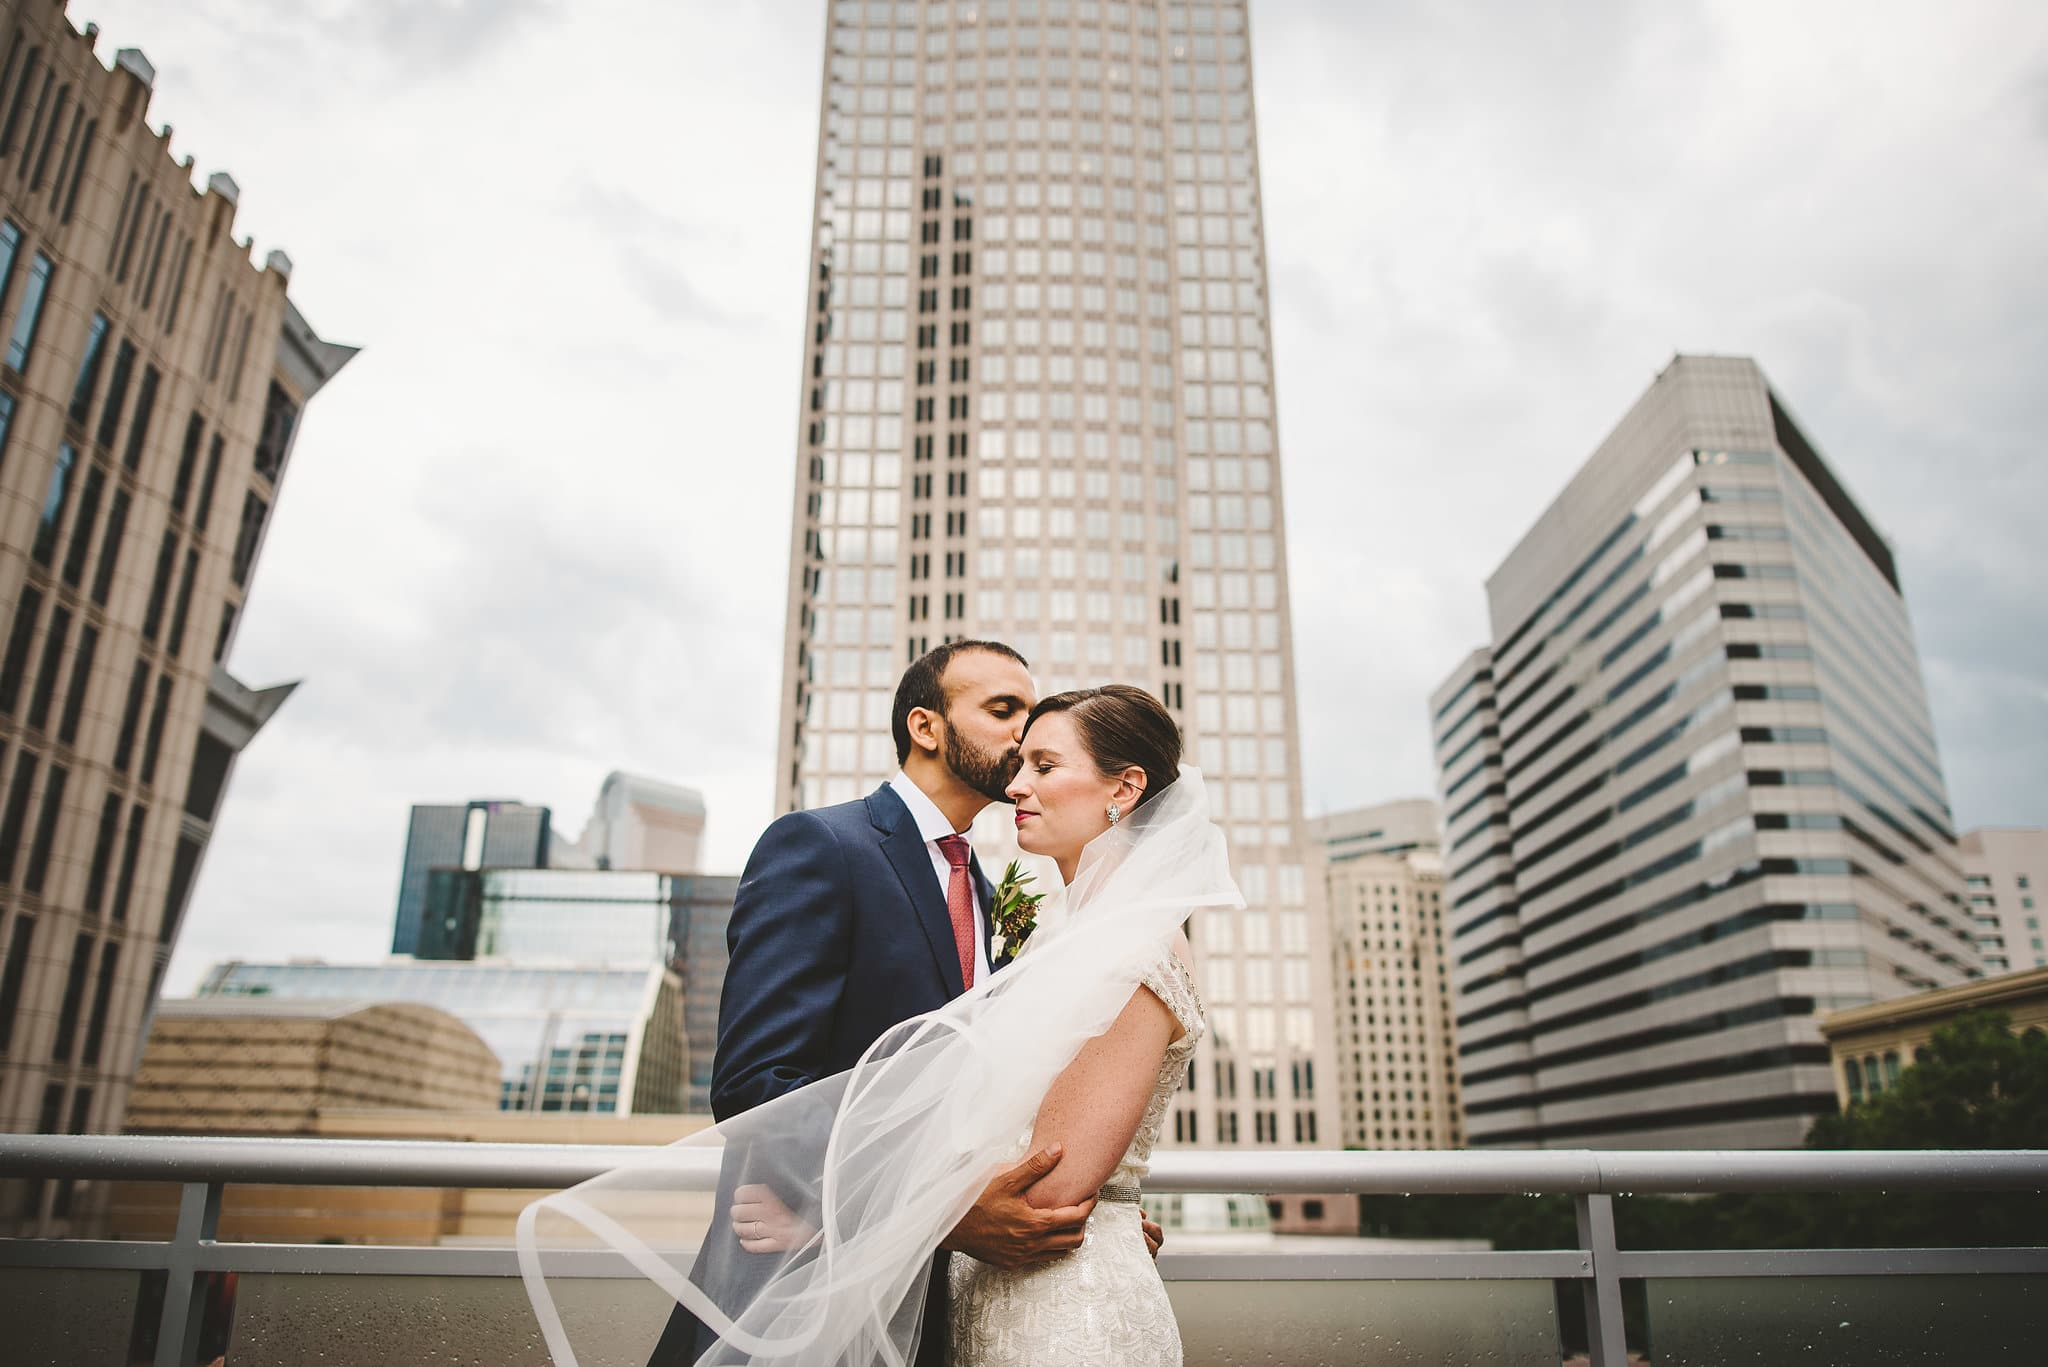 bride and groom photos with uptown charlotte as the backdrop